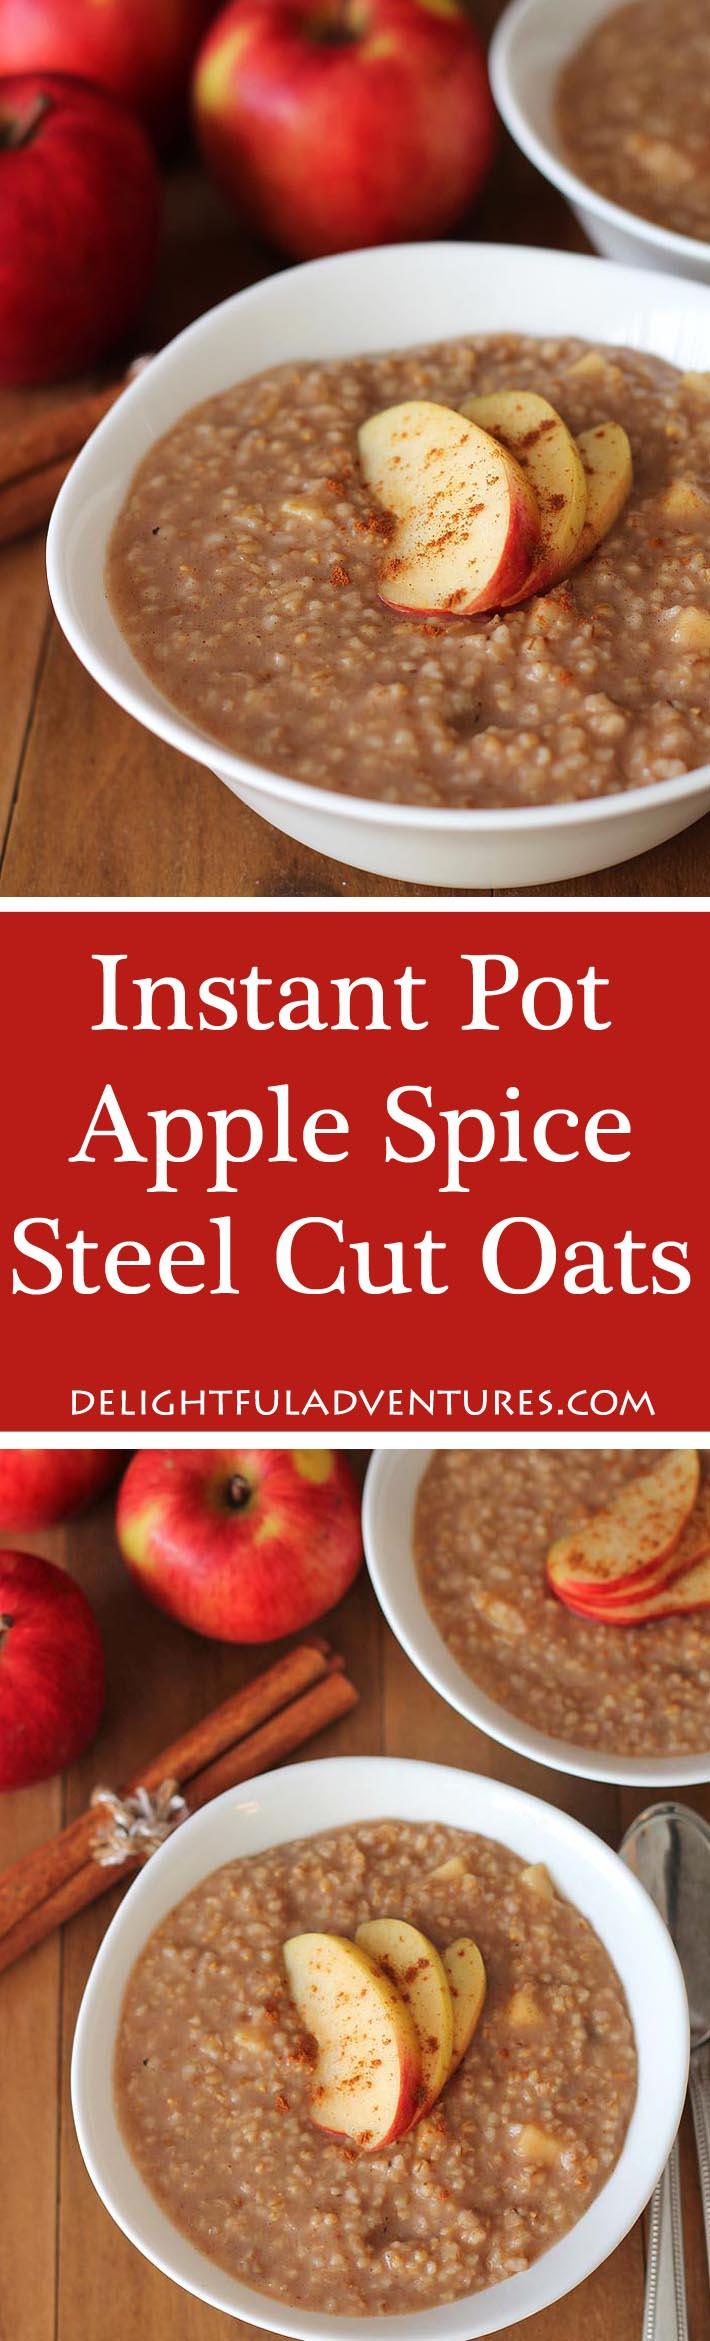 Apple Spice Instant Pot Steel Cut Oats make the perfect easy, warm, and delicious breakfast for cold days. #instantpot #pressurecooker #steelcutoats #veganglutenfree #glutenfreevegan #veganbreakfast #glutenfreebreakfast